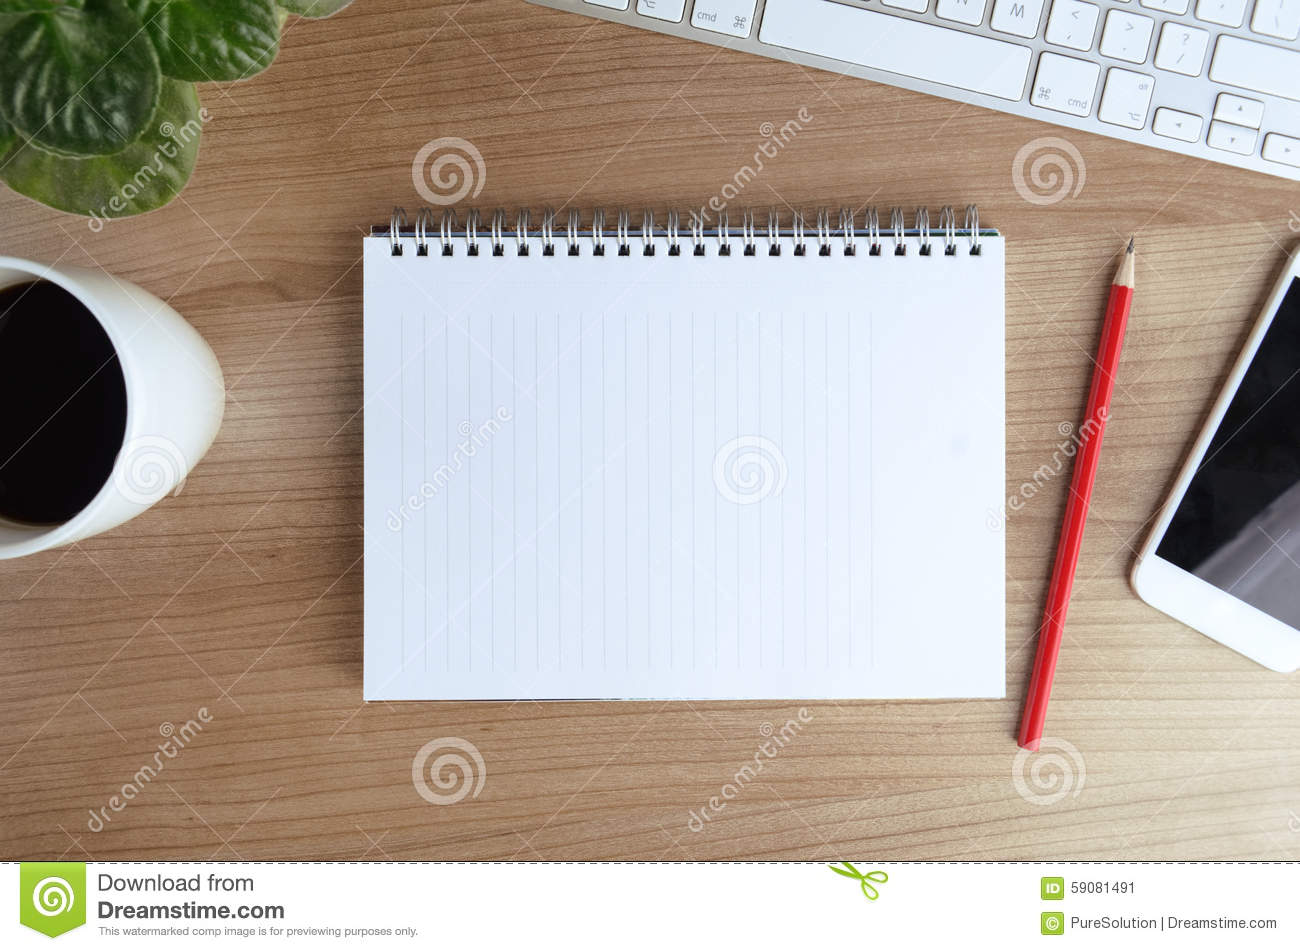 how to make a table webpage on notepad